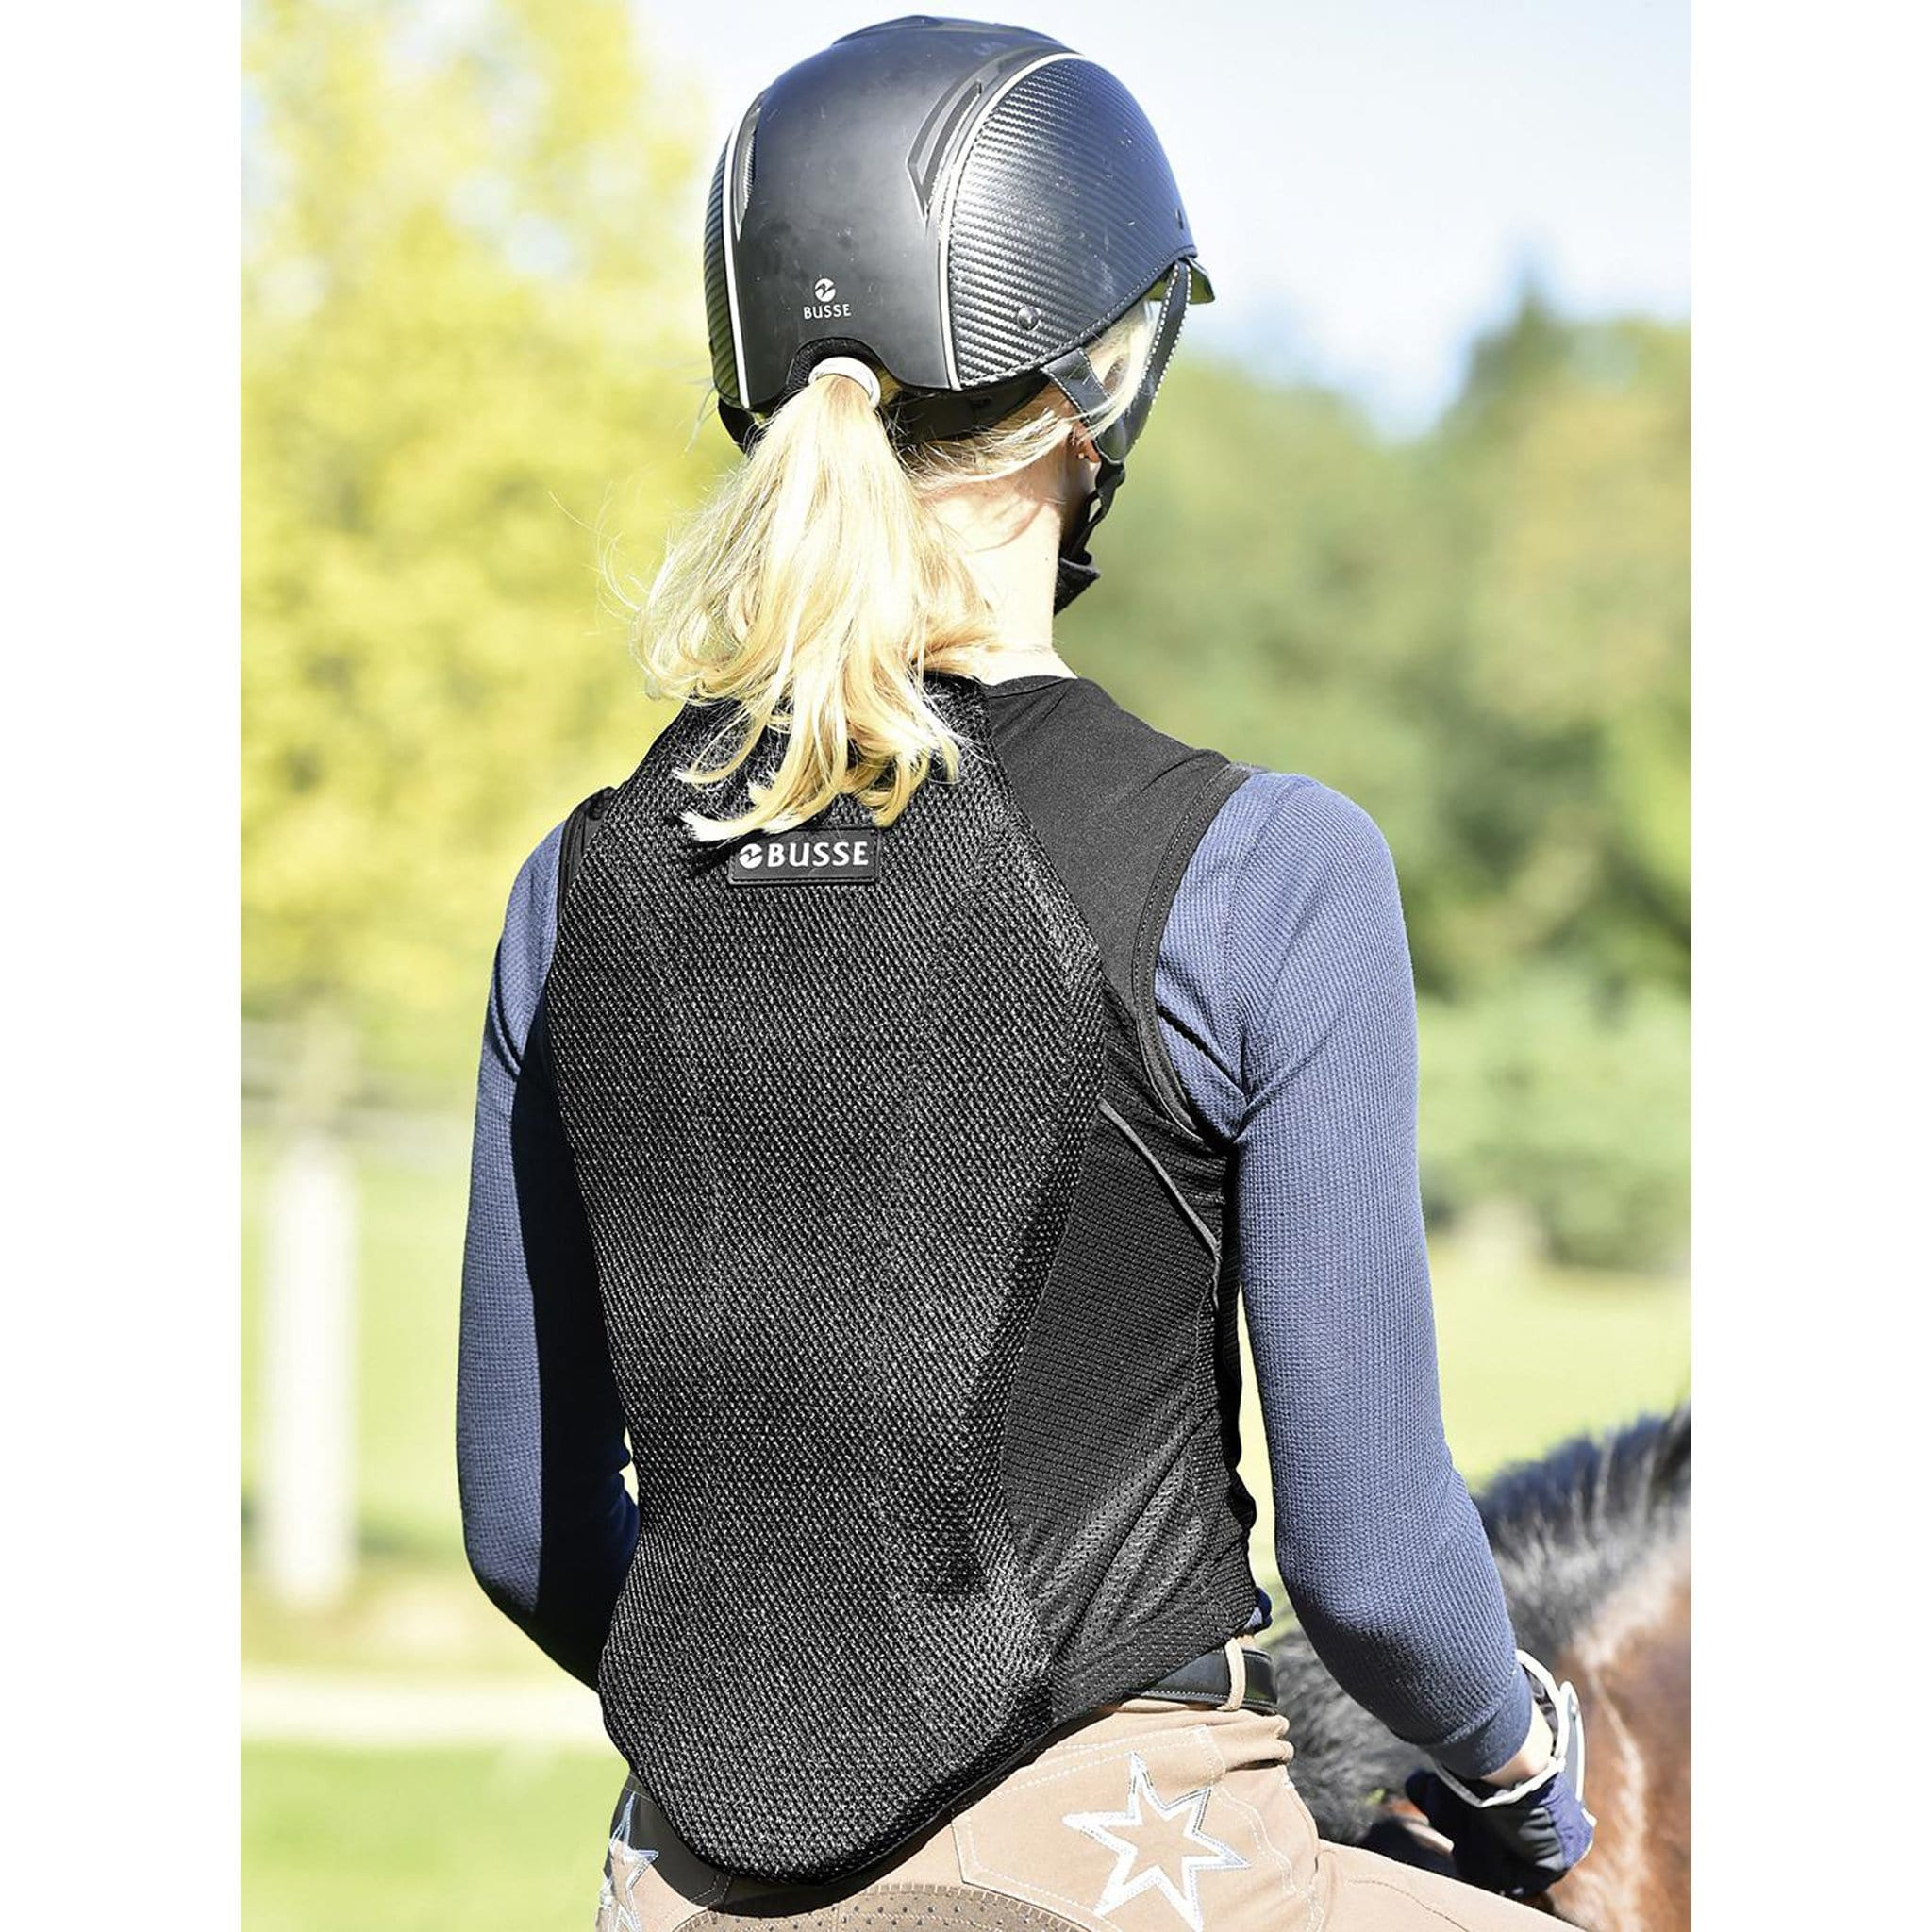 Busse Back Protector Lifestyle Rear View 706310